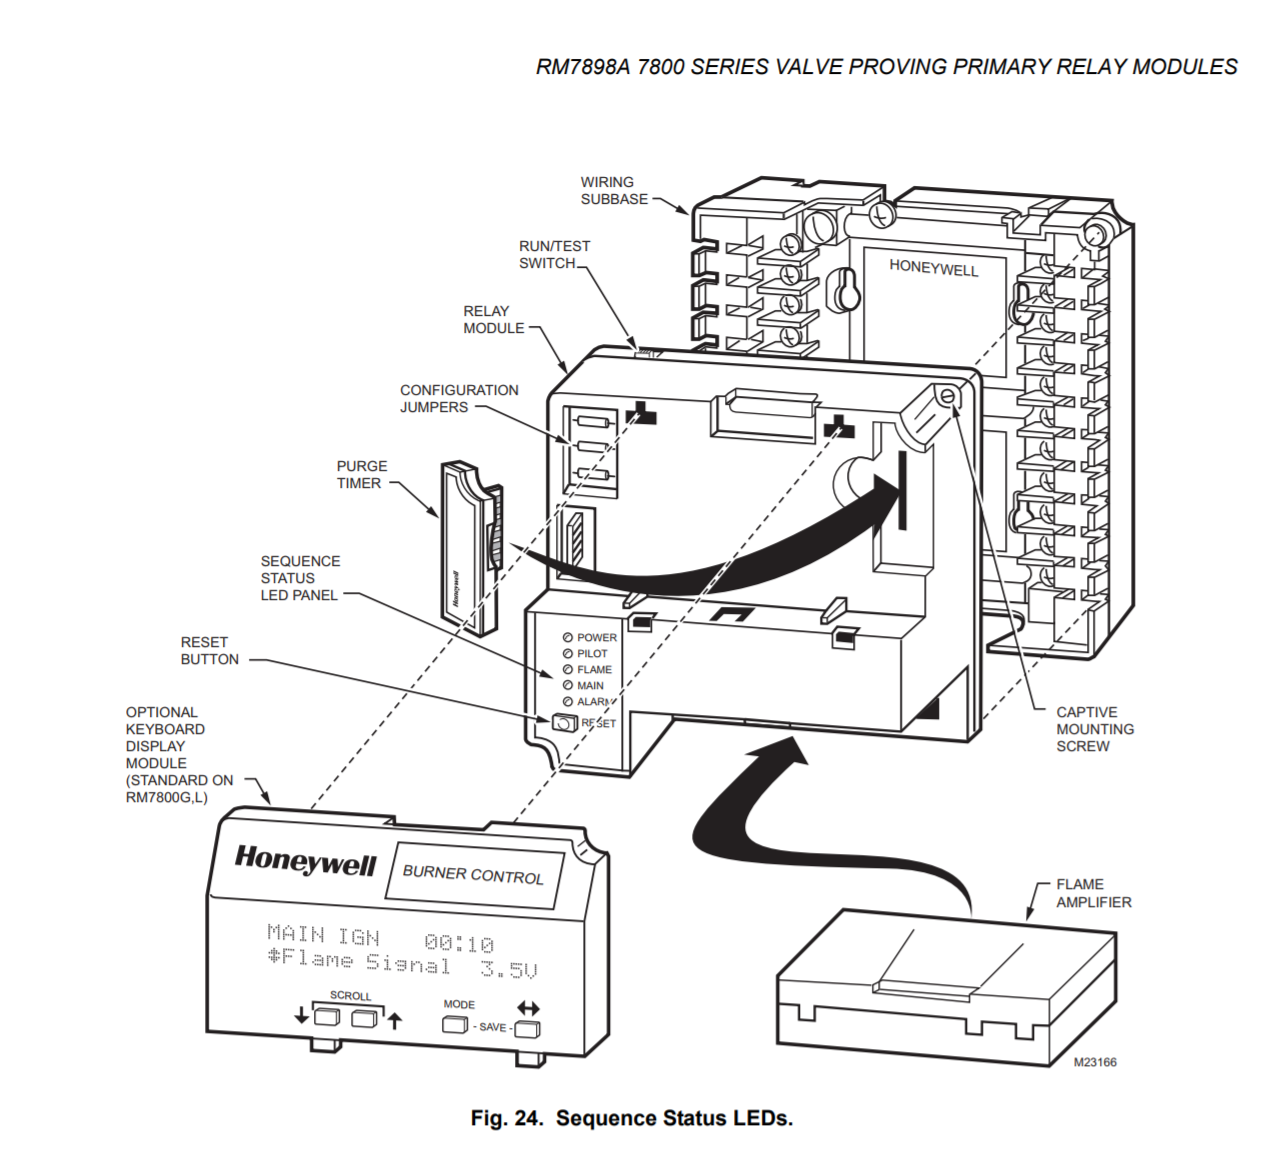 rm7895a honeywell burner control wiring diagram wiring library Wiring-Diagram Honeywell Burner Control 7840